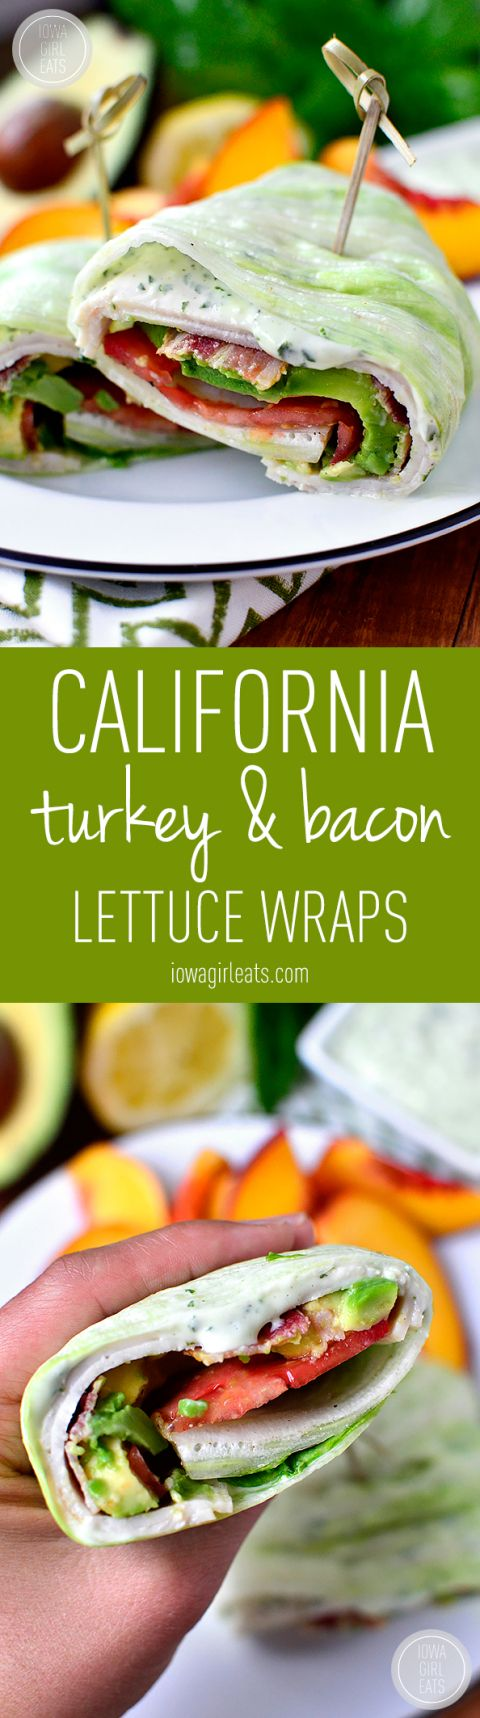 California Turkey and Bacon Lettuce Wraps with Basil-Mayo is a fresh and filling low-carb meal that comes together in minutes! #glutenfree | iowagirleats.com